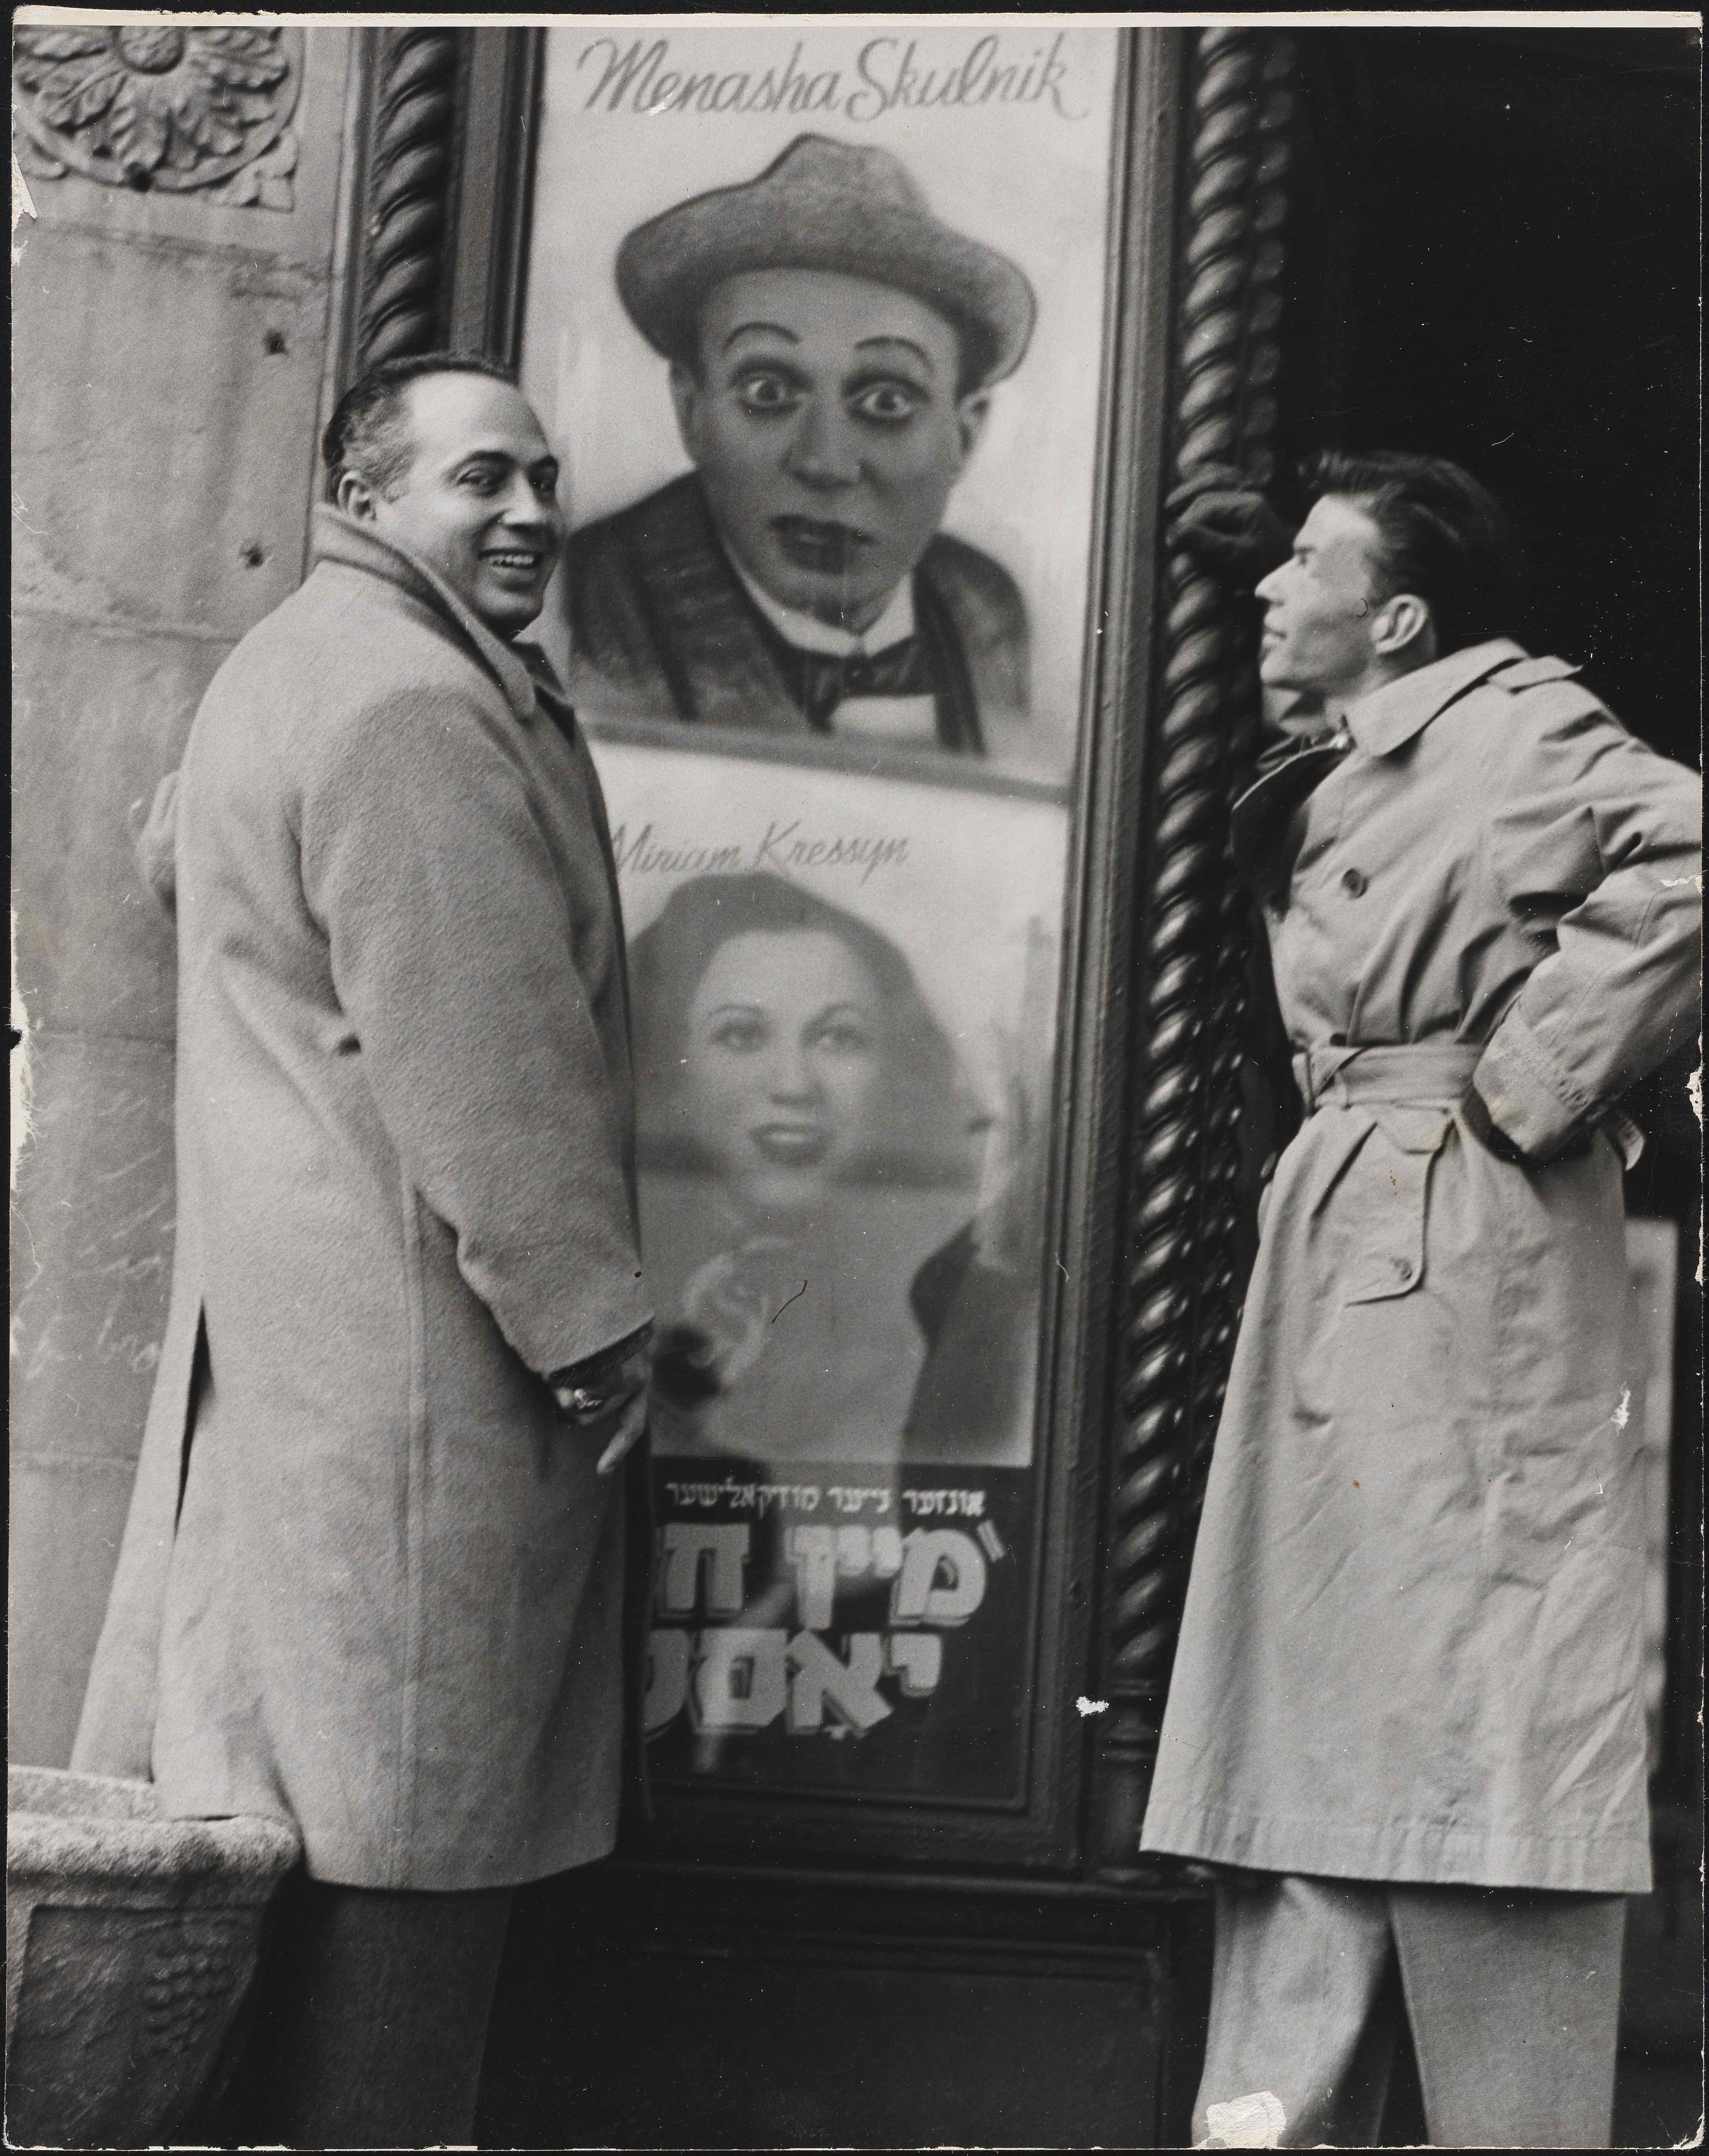 <p>Frank Sinatra (right) and his agent pose with posters of Yiddish stars Menasha Skulnik and Miriam Kressyn outside the Second Avenue Theatre, c. 1943. Museum of the City of New York, Gift of Mrs. Menasha Skulnik, 76.55</p>